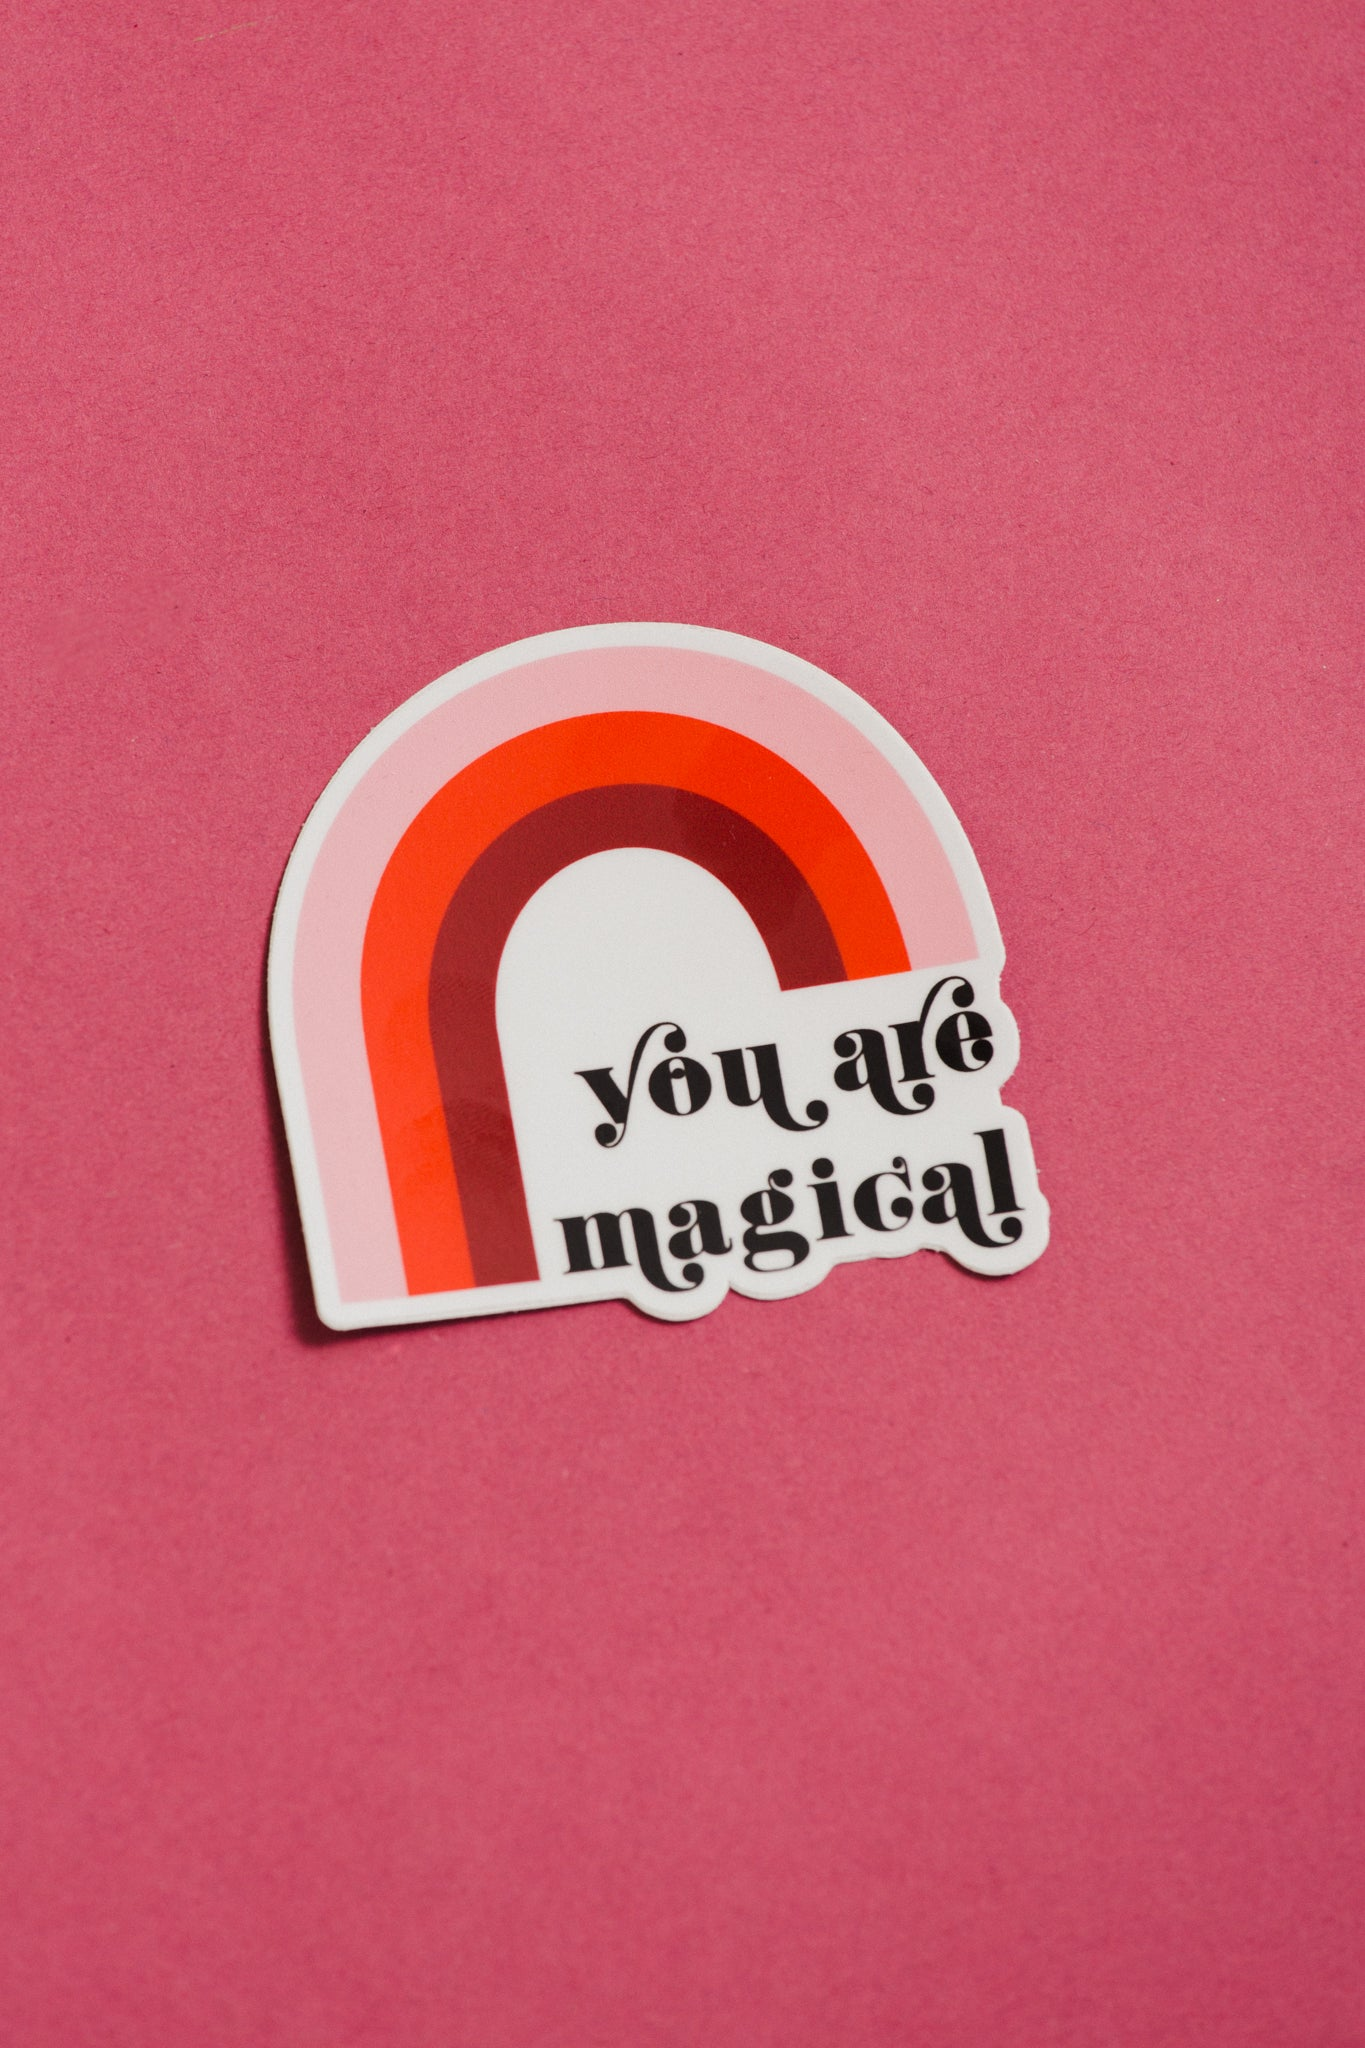 You are magical Sticker